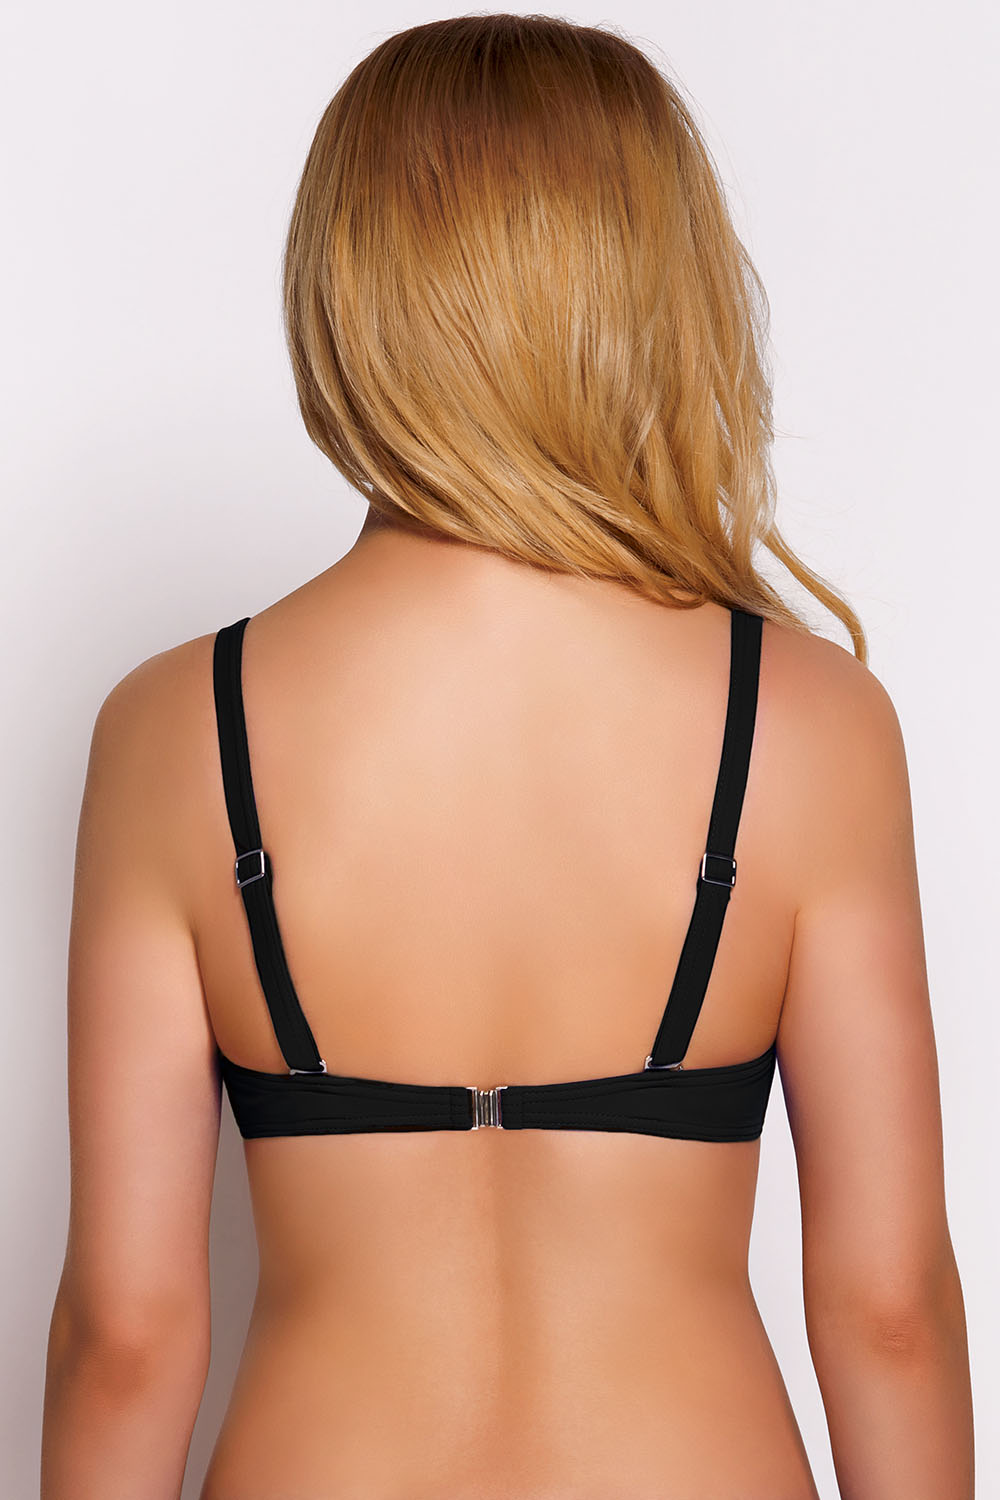 Vivisence 3209 Underwired Bikini Top Padded Cups Matching Bottoms Available